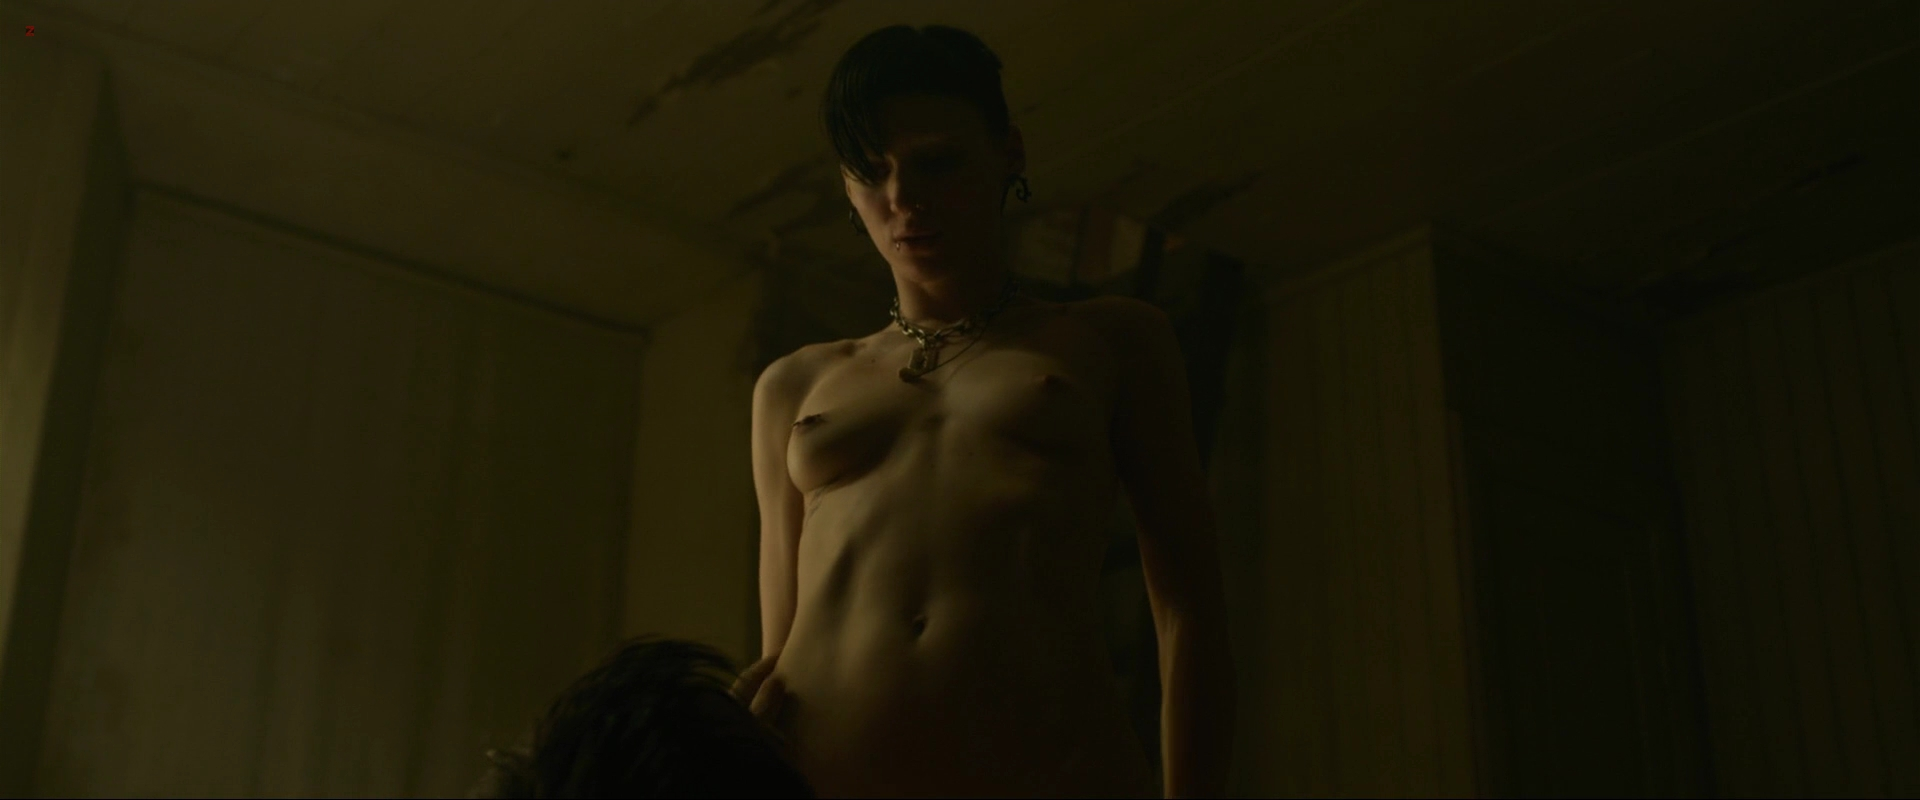 Rooney Mara naked rough sex oral and lesbian - The Girl with the Dragon Tattoo (2011) hd1080p (19)